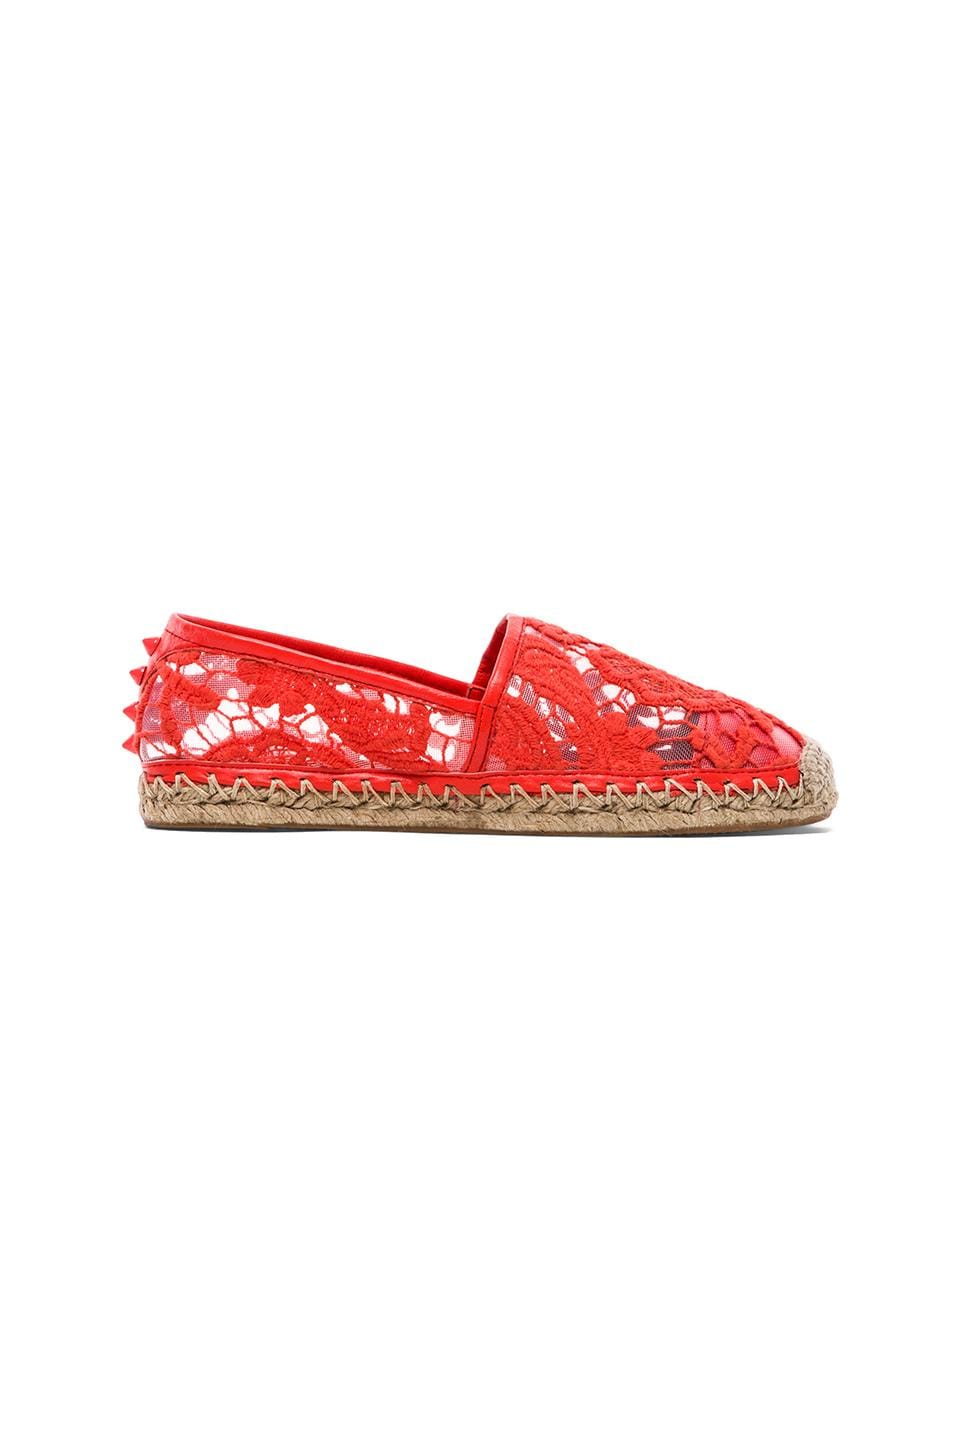 Rebecca Minkoff Genny Flat in Hot Red Woven Lace